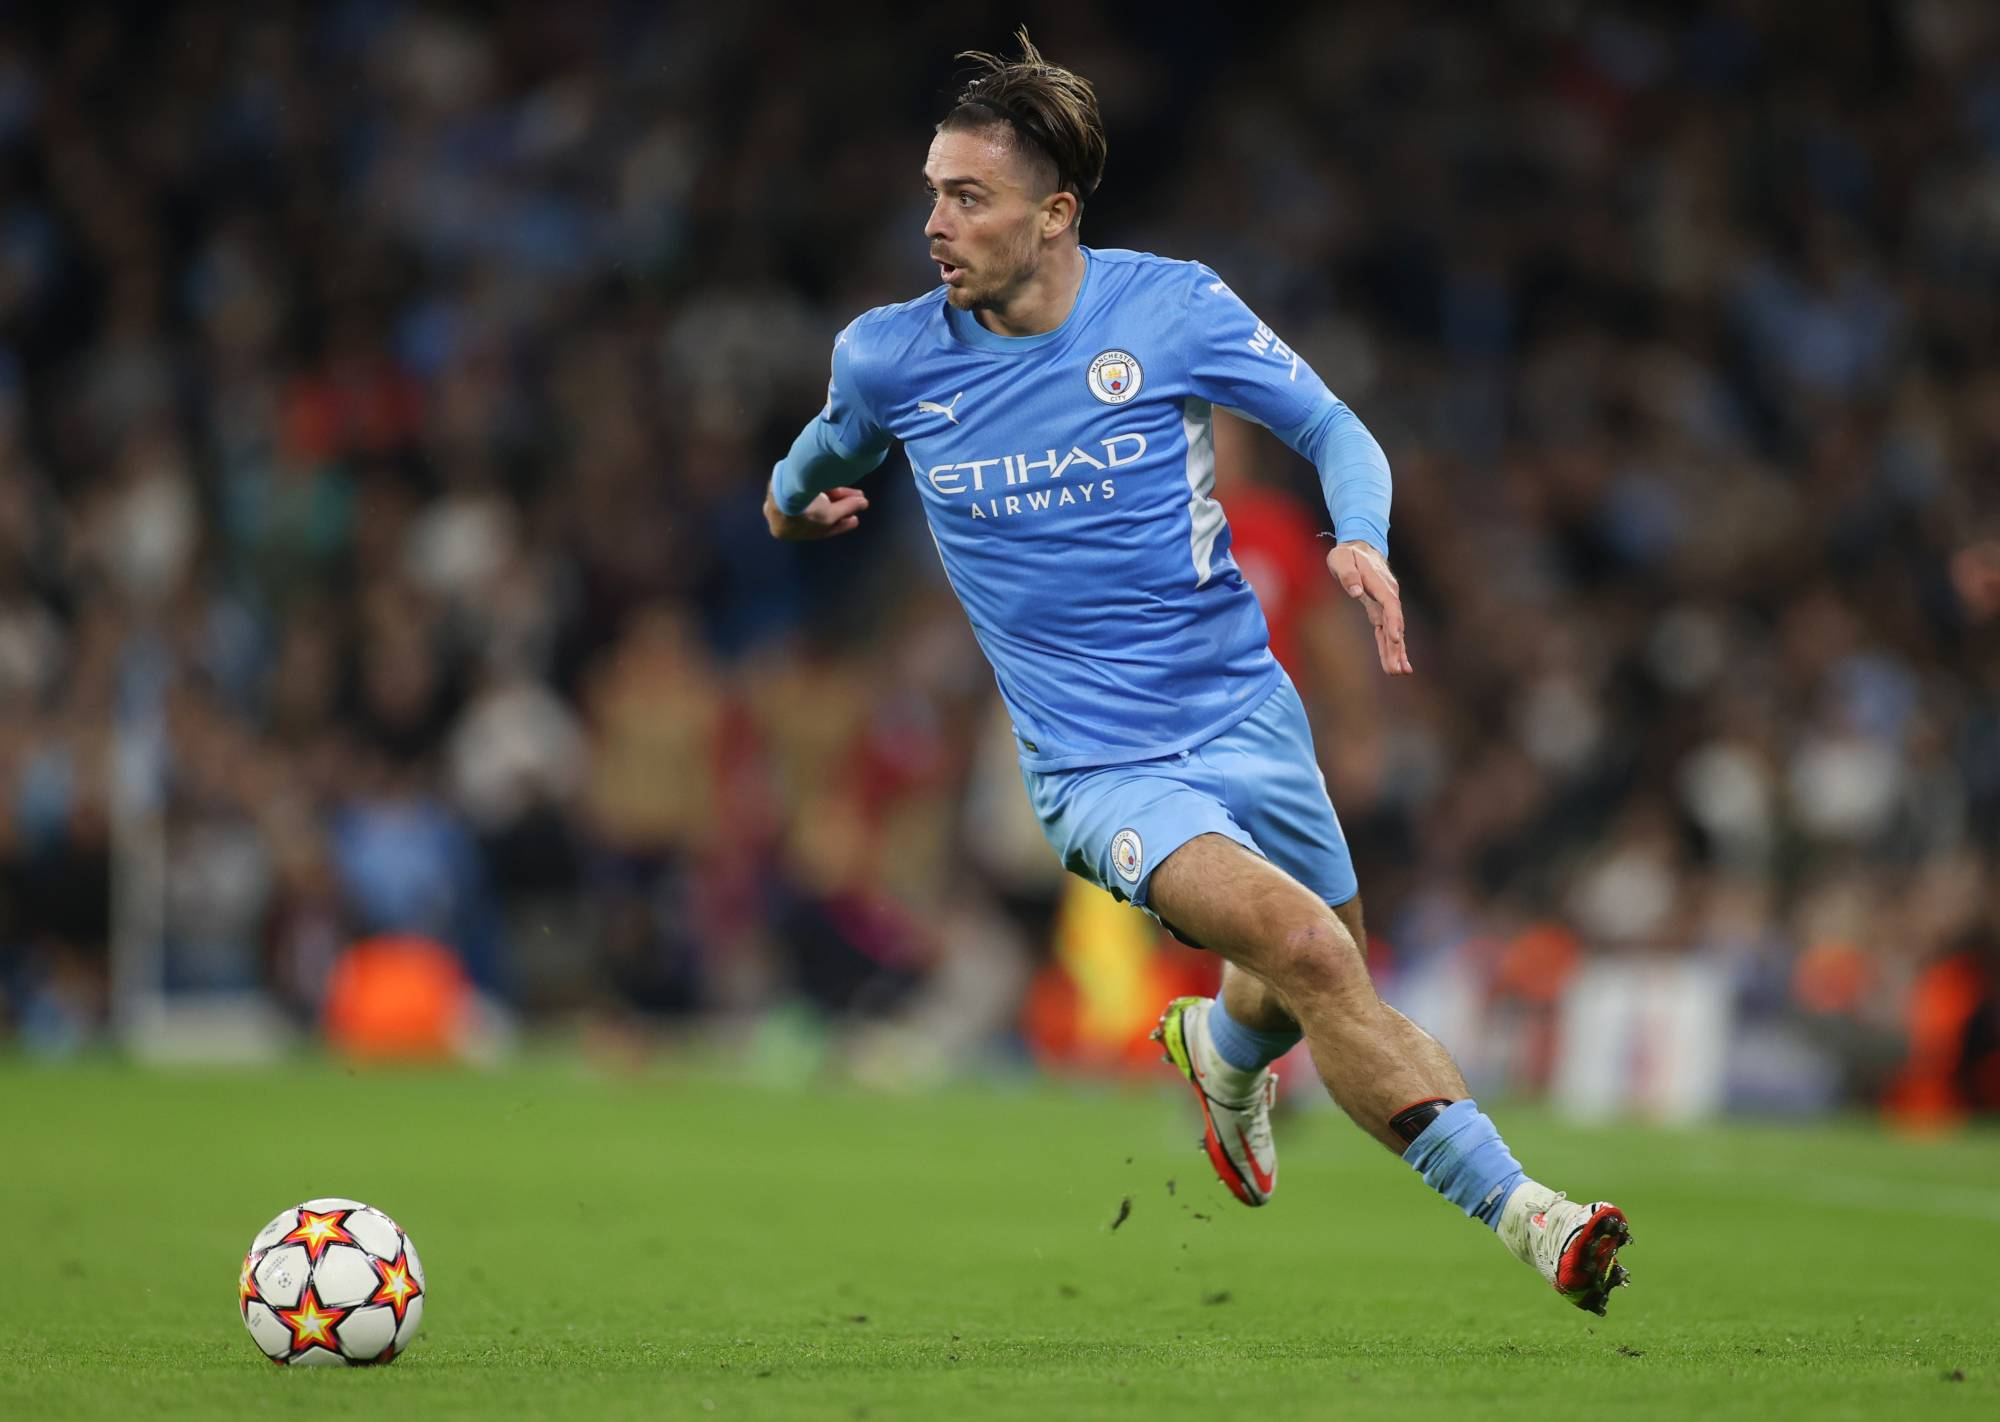 Manchester City's Jack Grealish moves with the ball during a Champions League match against Leipzig in Manchester, England, on Wednesday.   ACTION IMAGES / VIA REUTERS